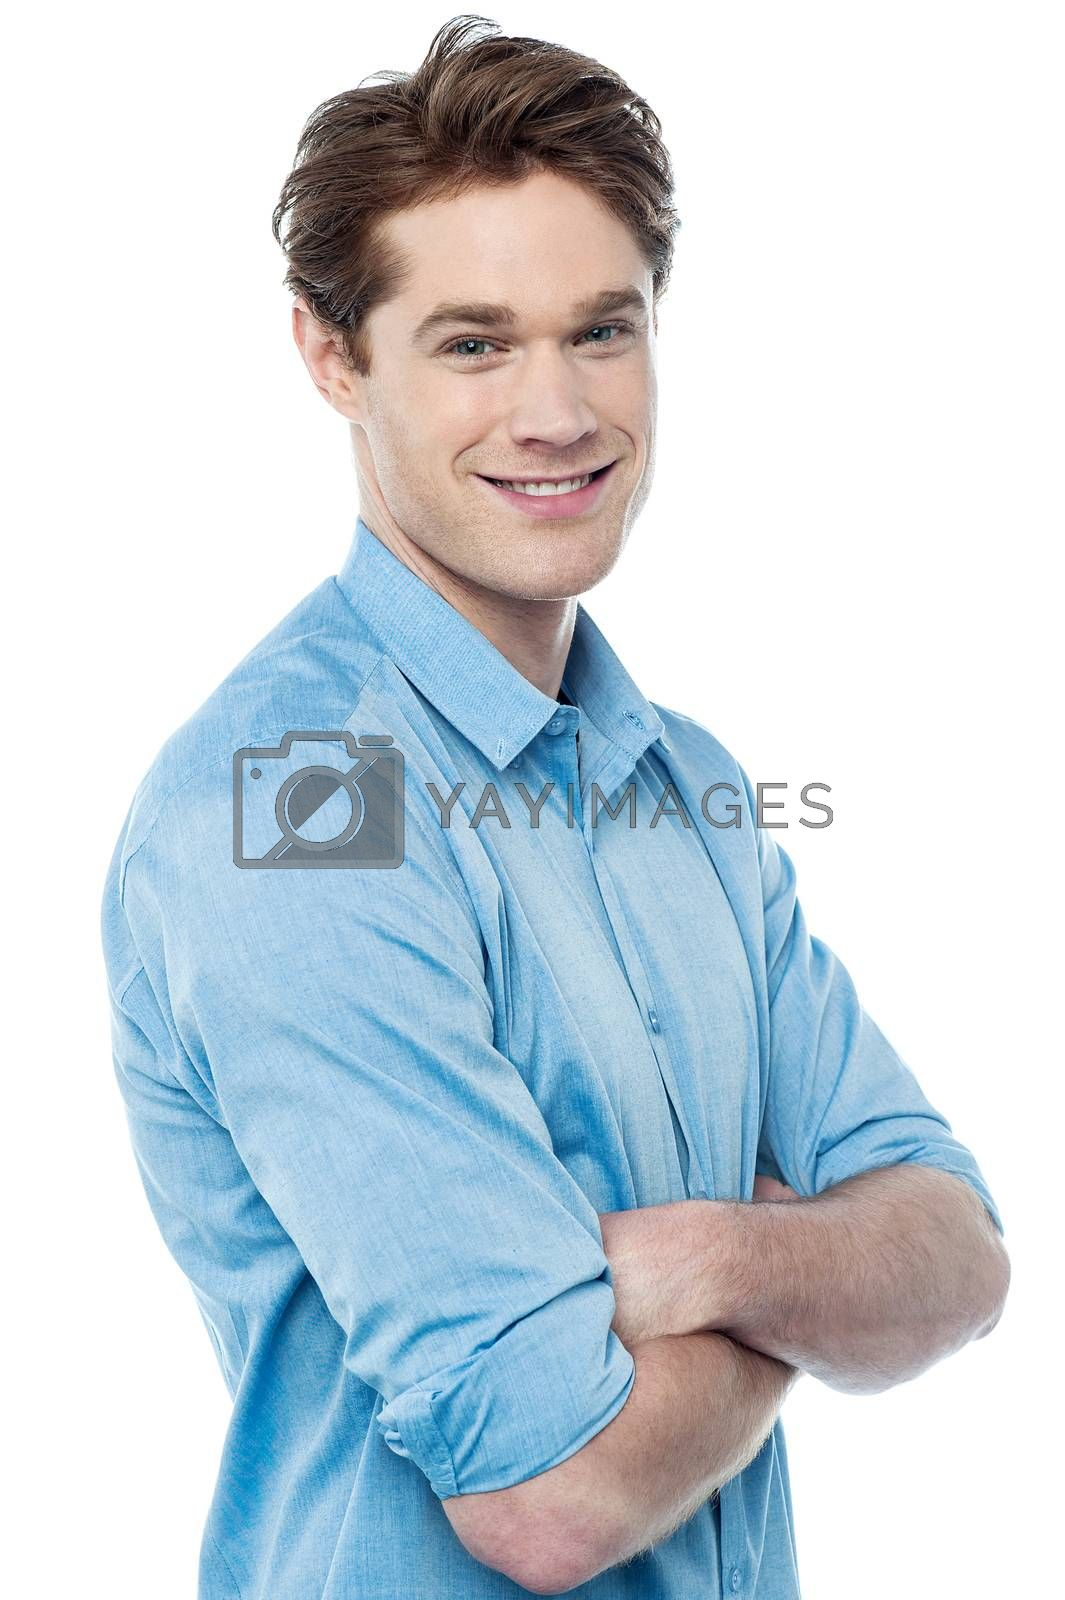 Royalty free image of Casual smiling man with arms crossed by stockyimages